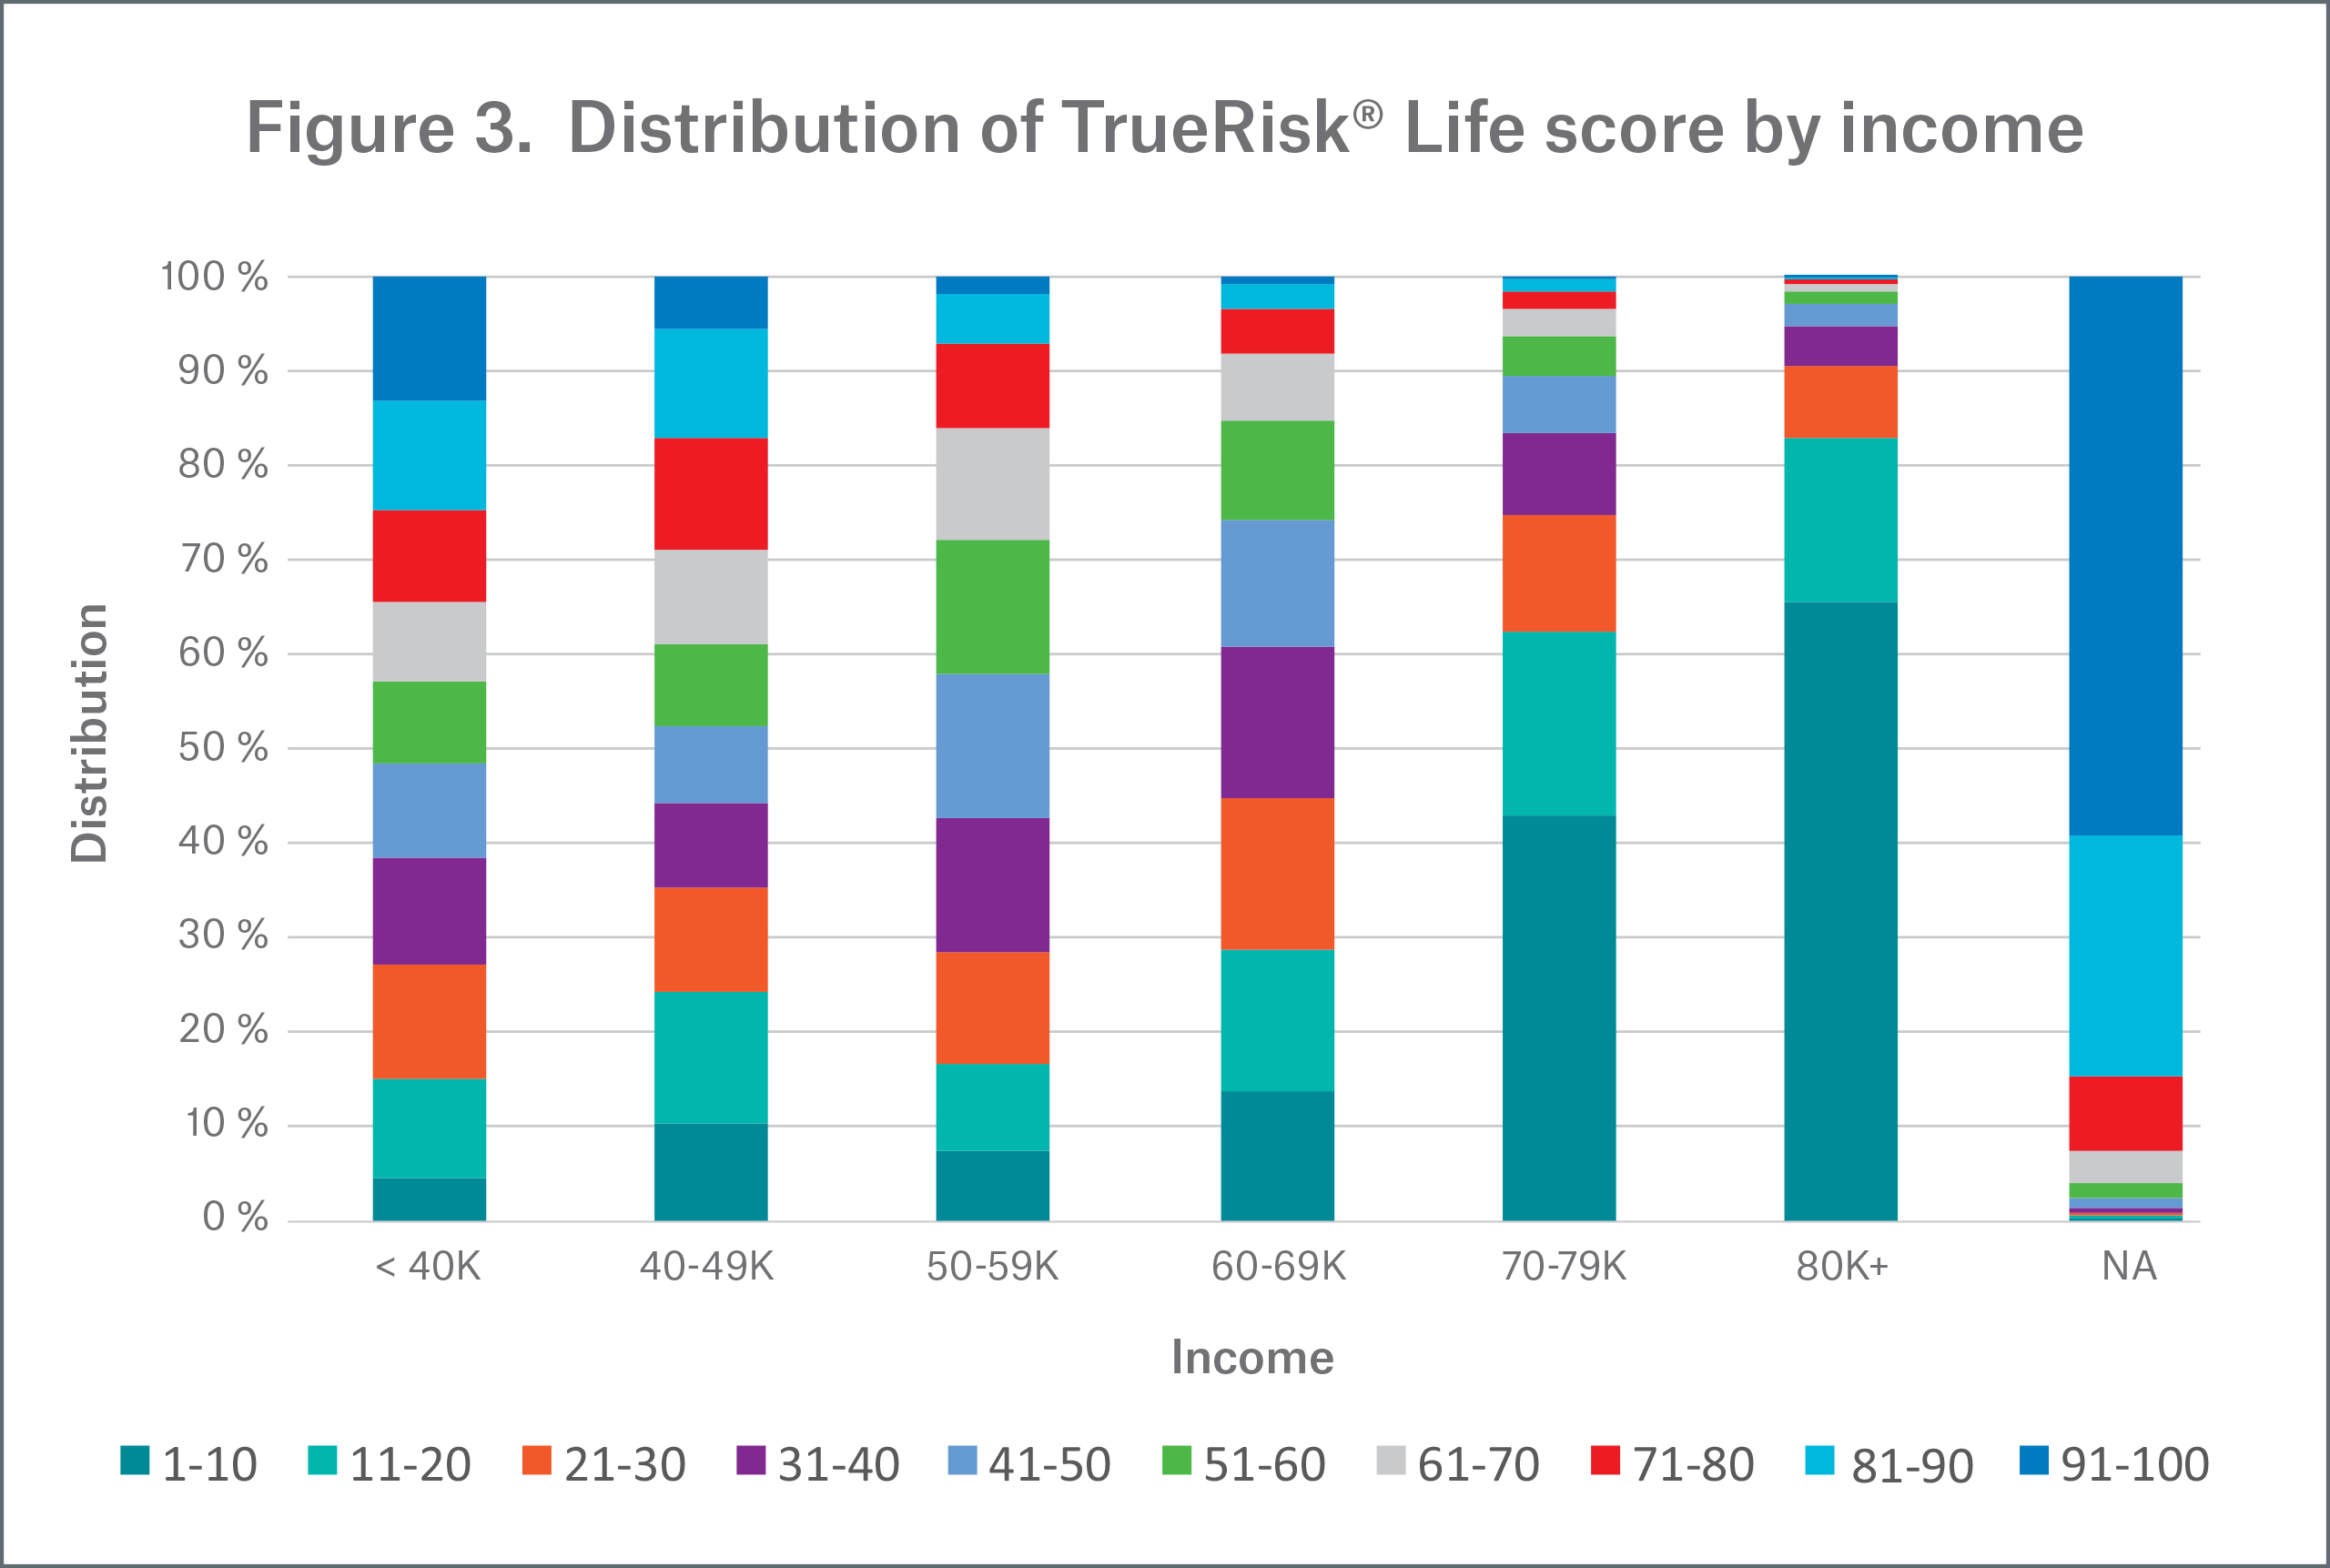 Figure 3 - Distribution of TrueRisk Life score by Income